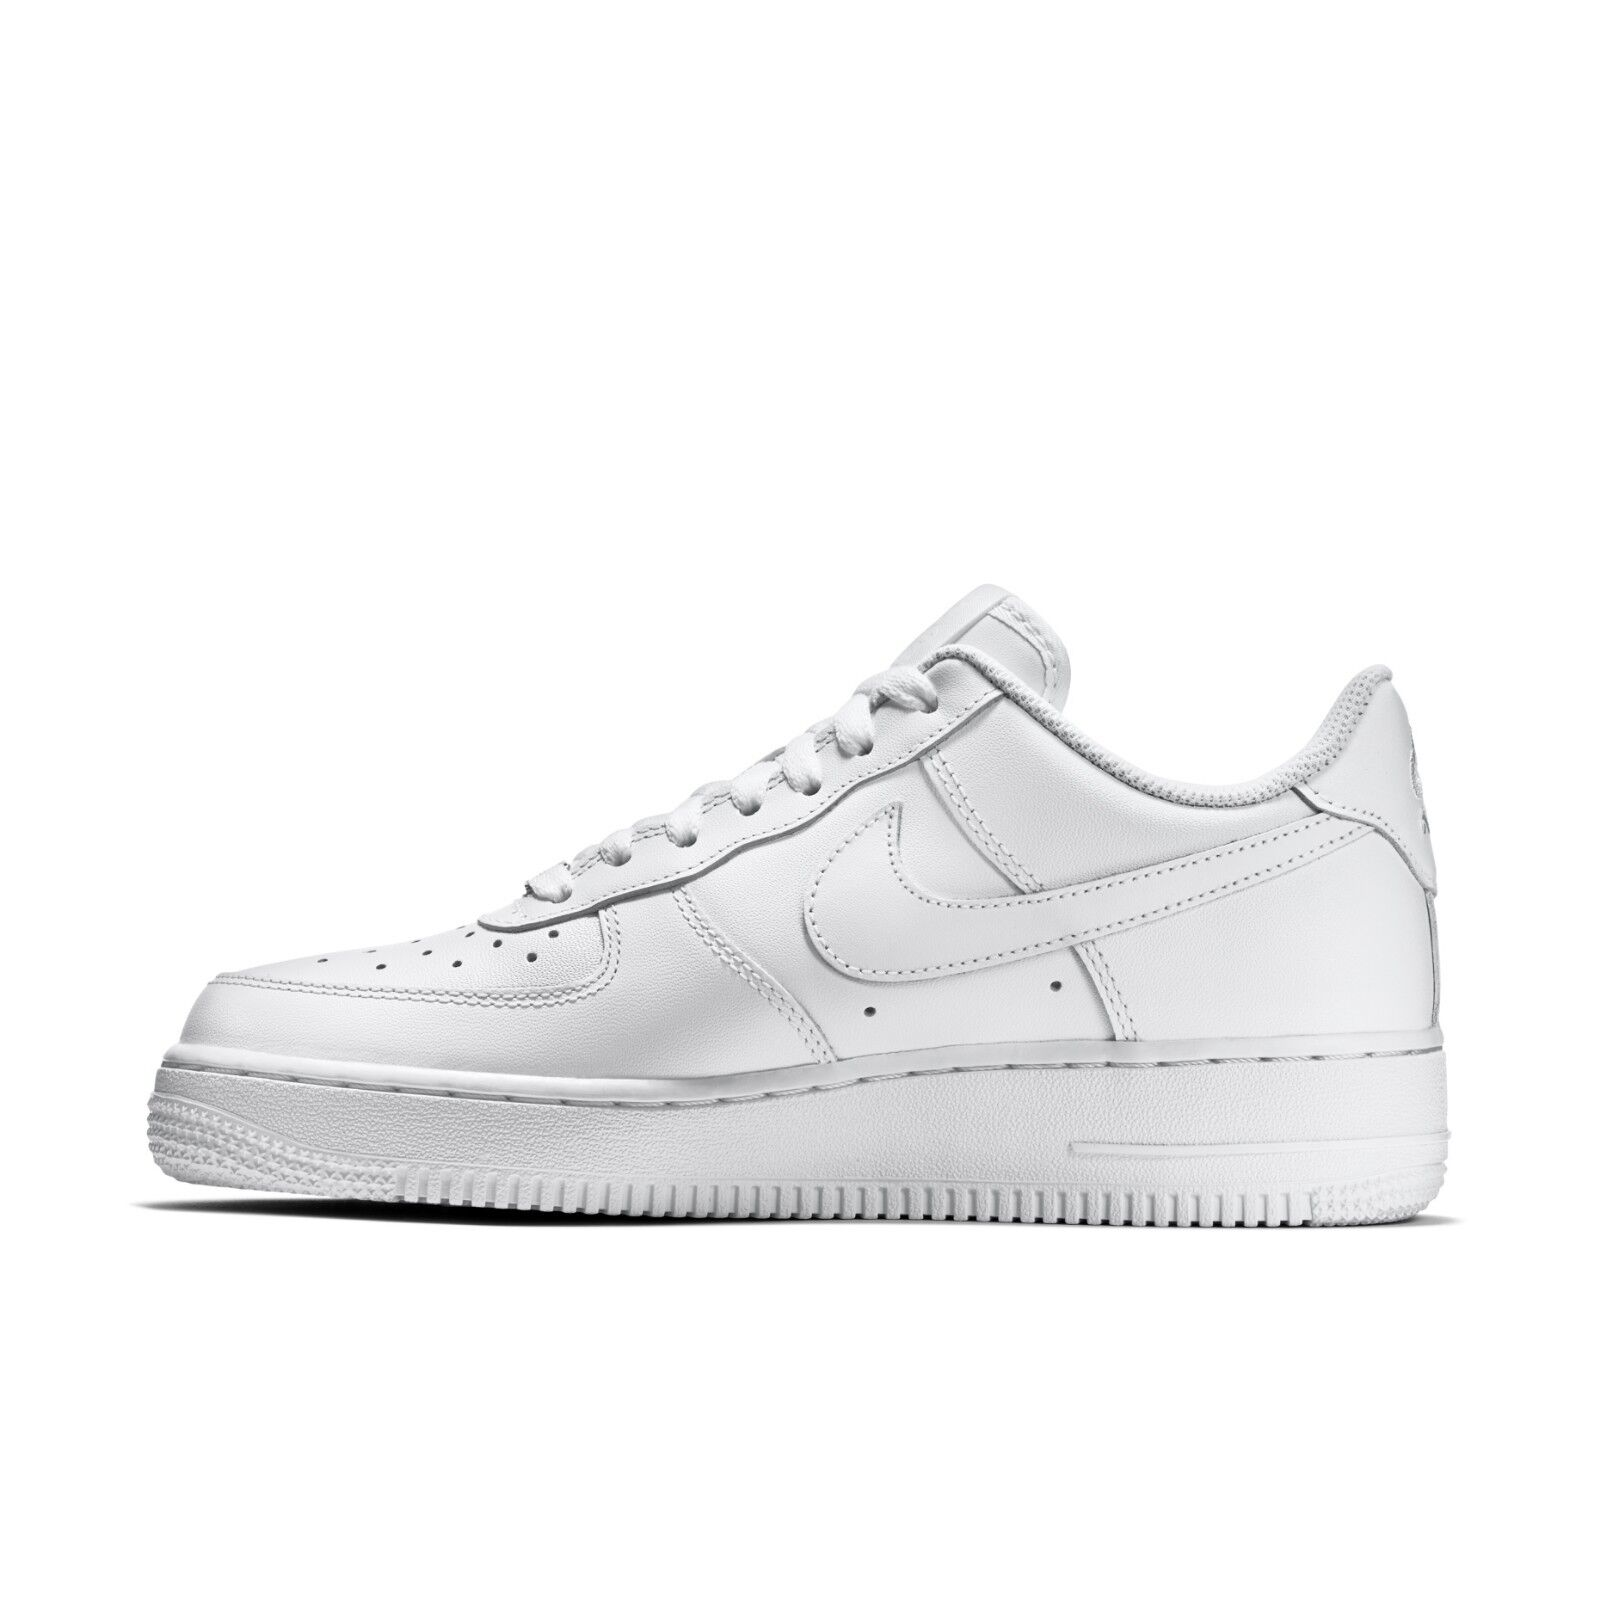 Nike Air Force 1 07 LE Low All Triple White 315115 112 Womens 5 11 | eBay